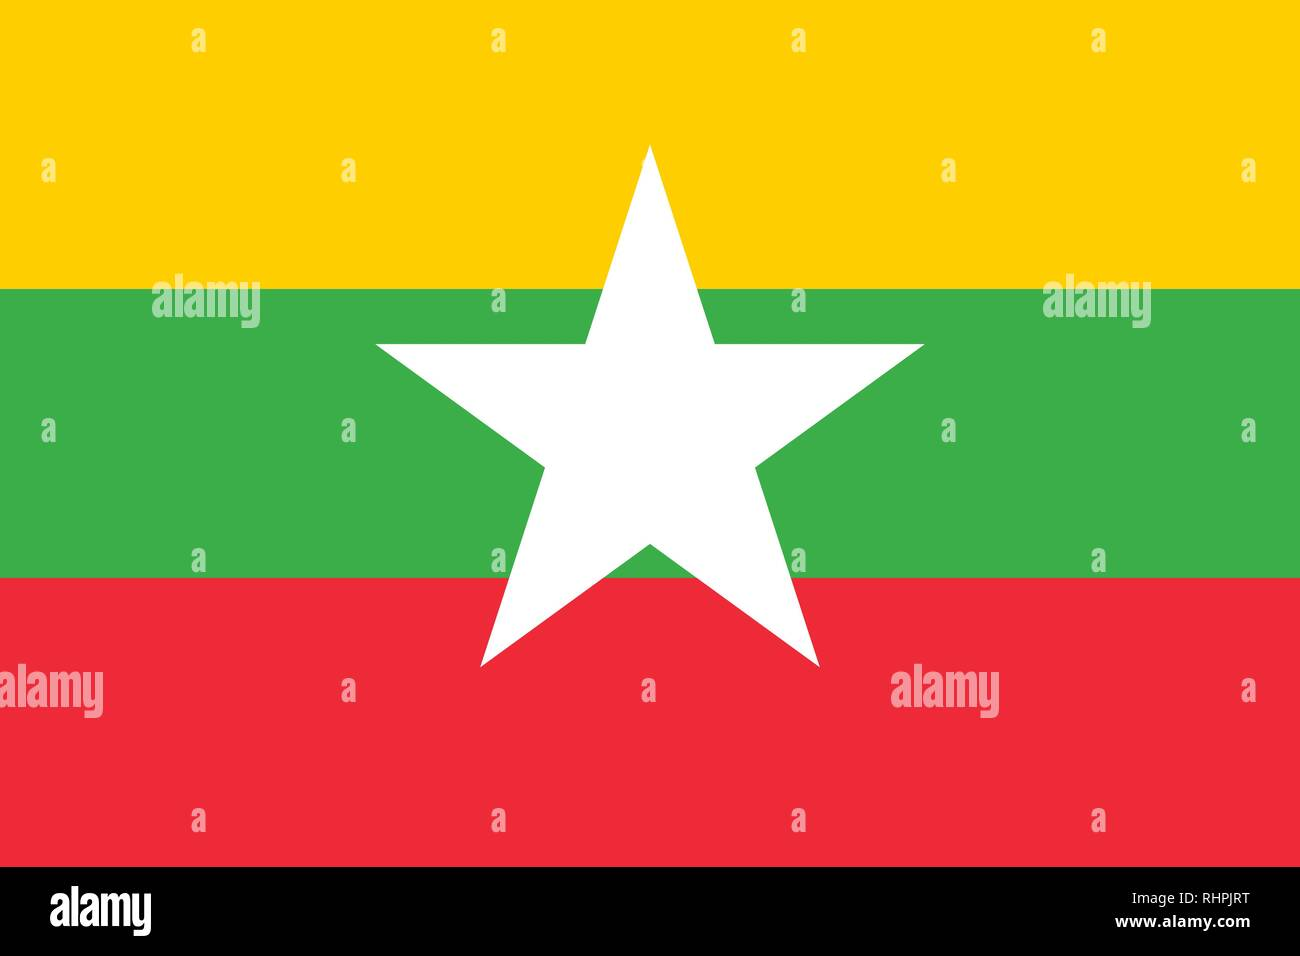 Vector Image of Myanmar Flag. Based on the official and exact Myanmar flag dimensions (3:2) & colors (116C, 361C, 1788C and White) - Stock Vector